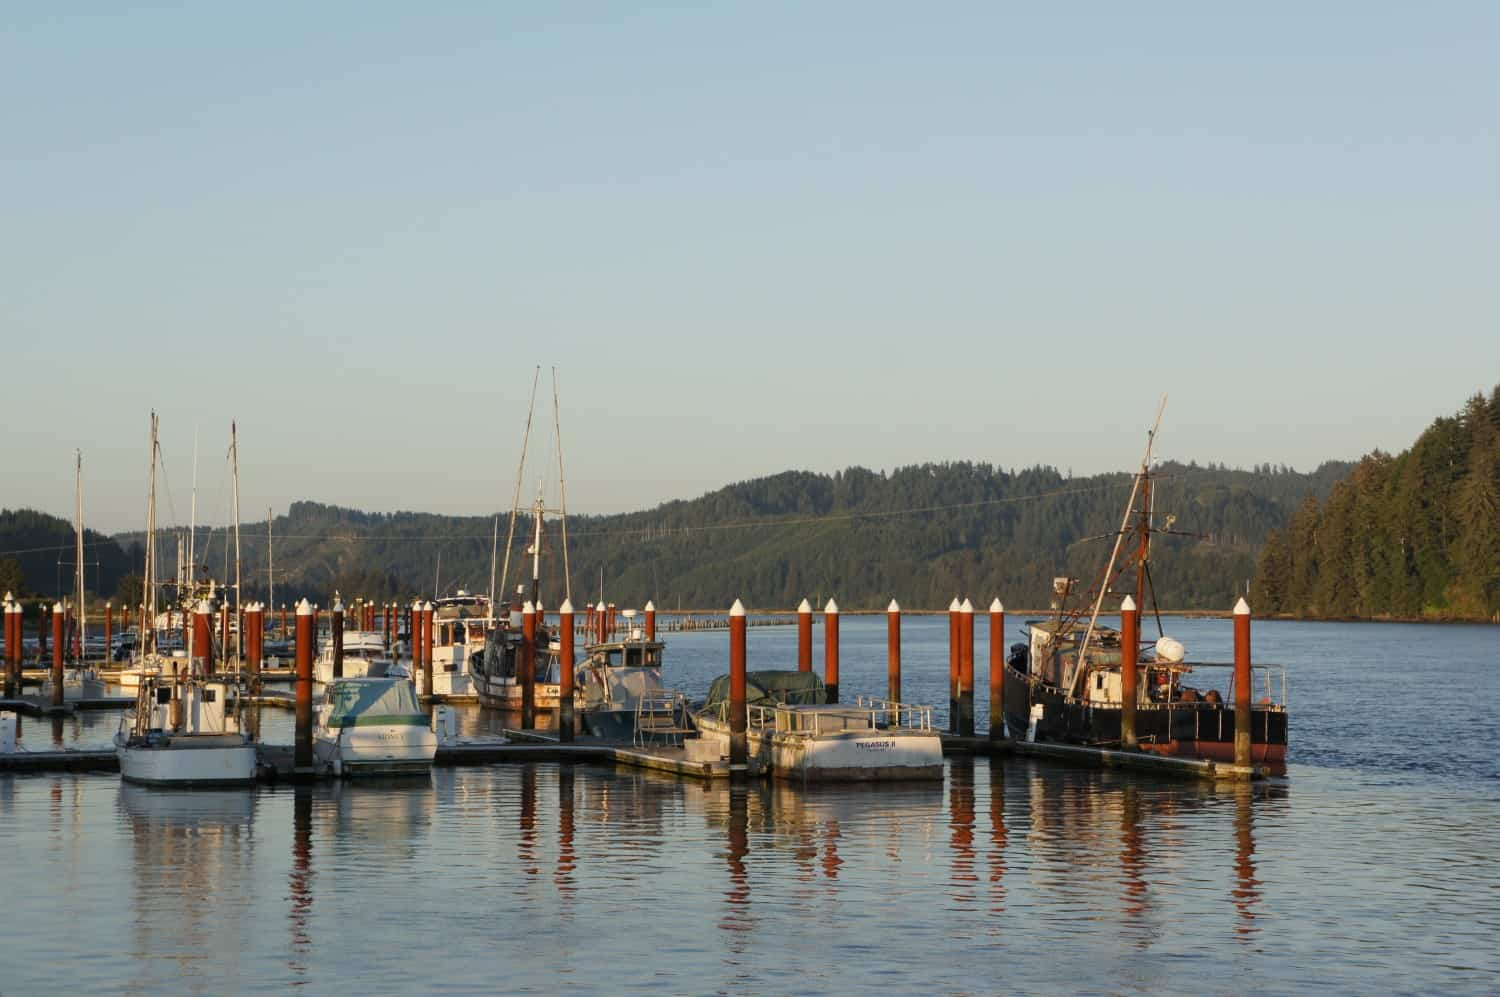 Boats in Port - Florence, OR